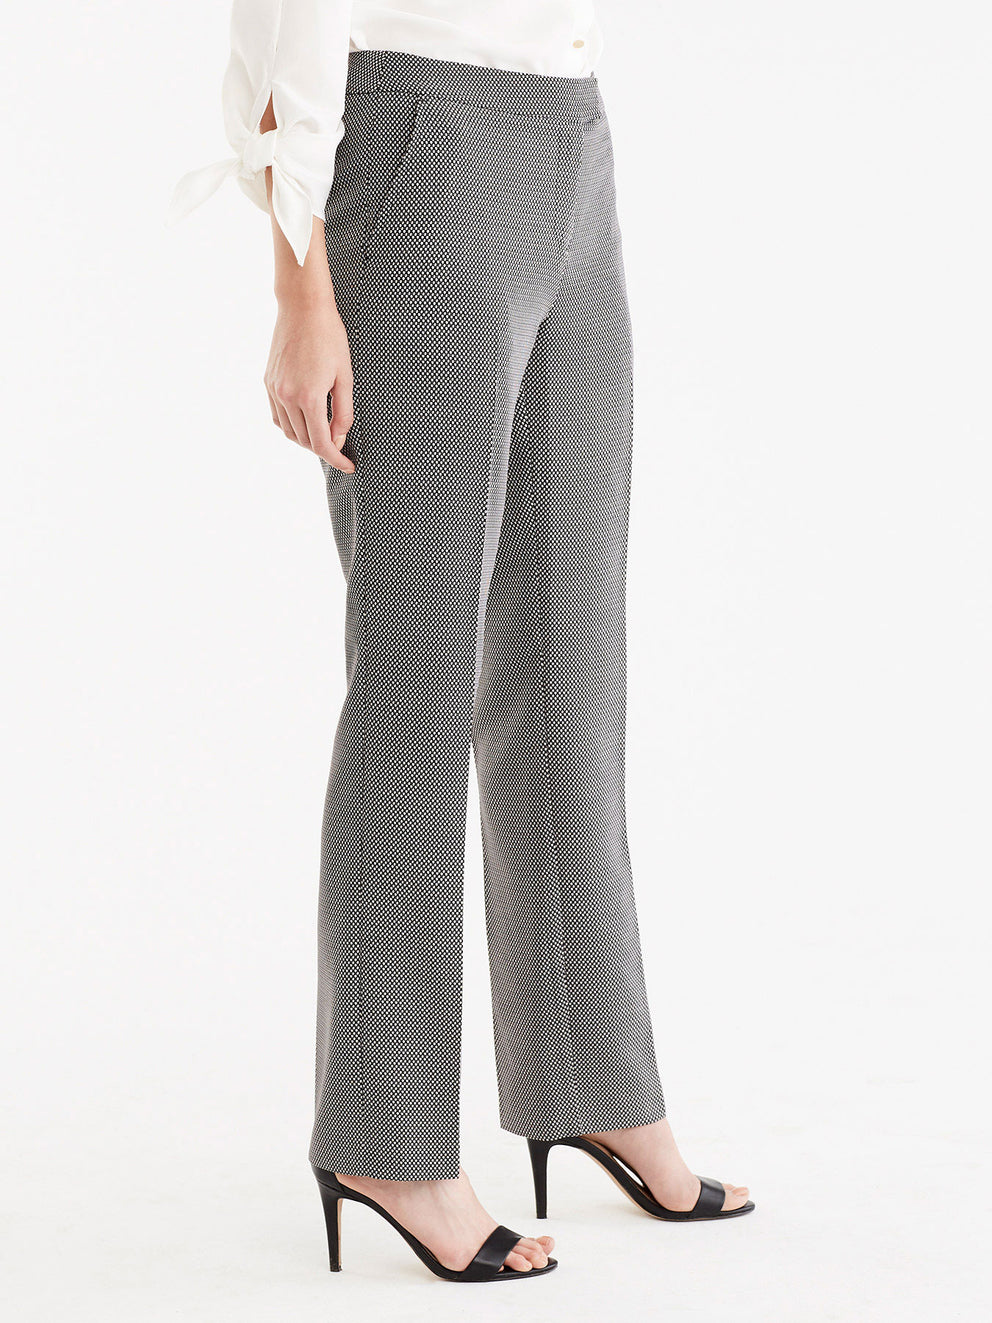 The Jones New York Printed Sydney Pant in color Black Ivory - Image Position 4